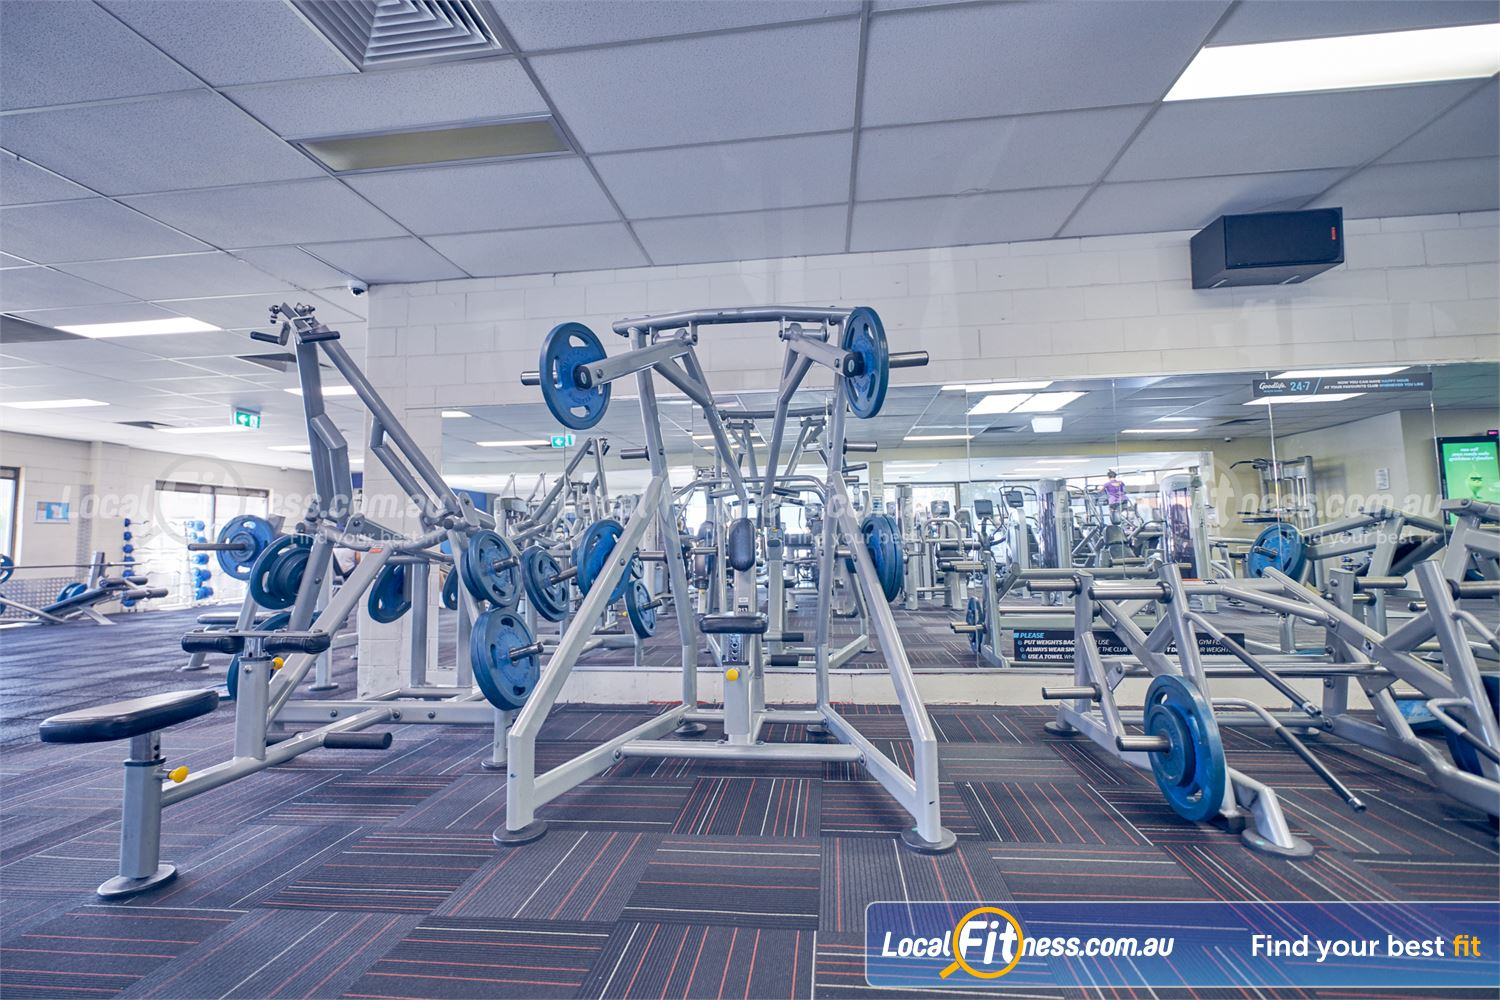 Goodlife Health Clubs Dingley Village Our Dingley gym includes a fully equipped free-weights area.